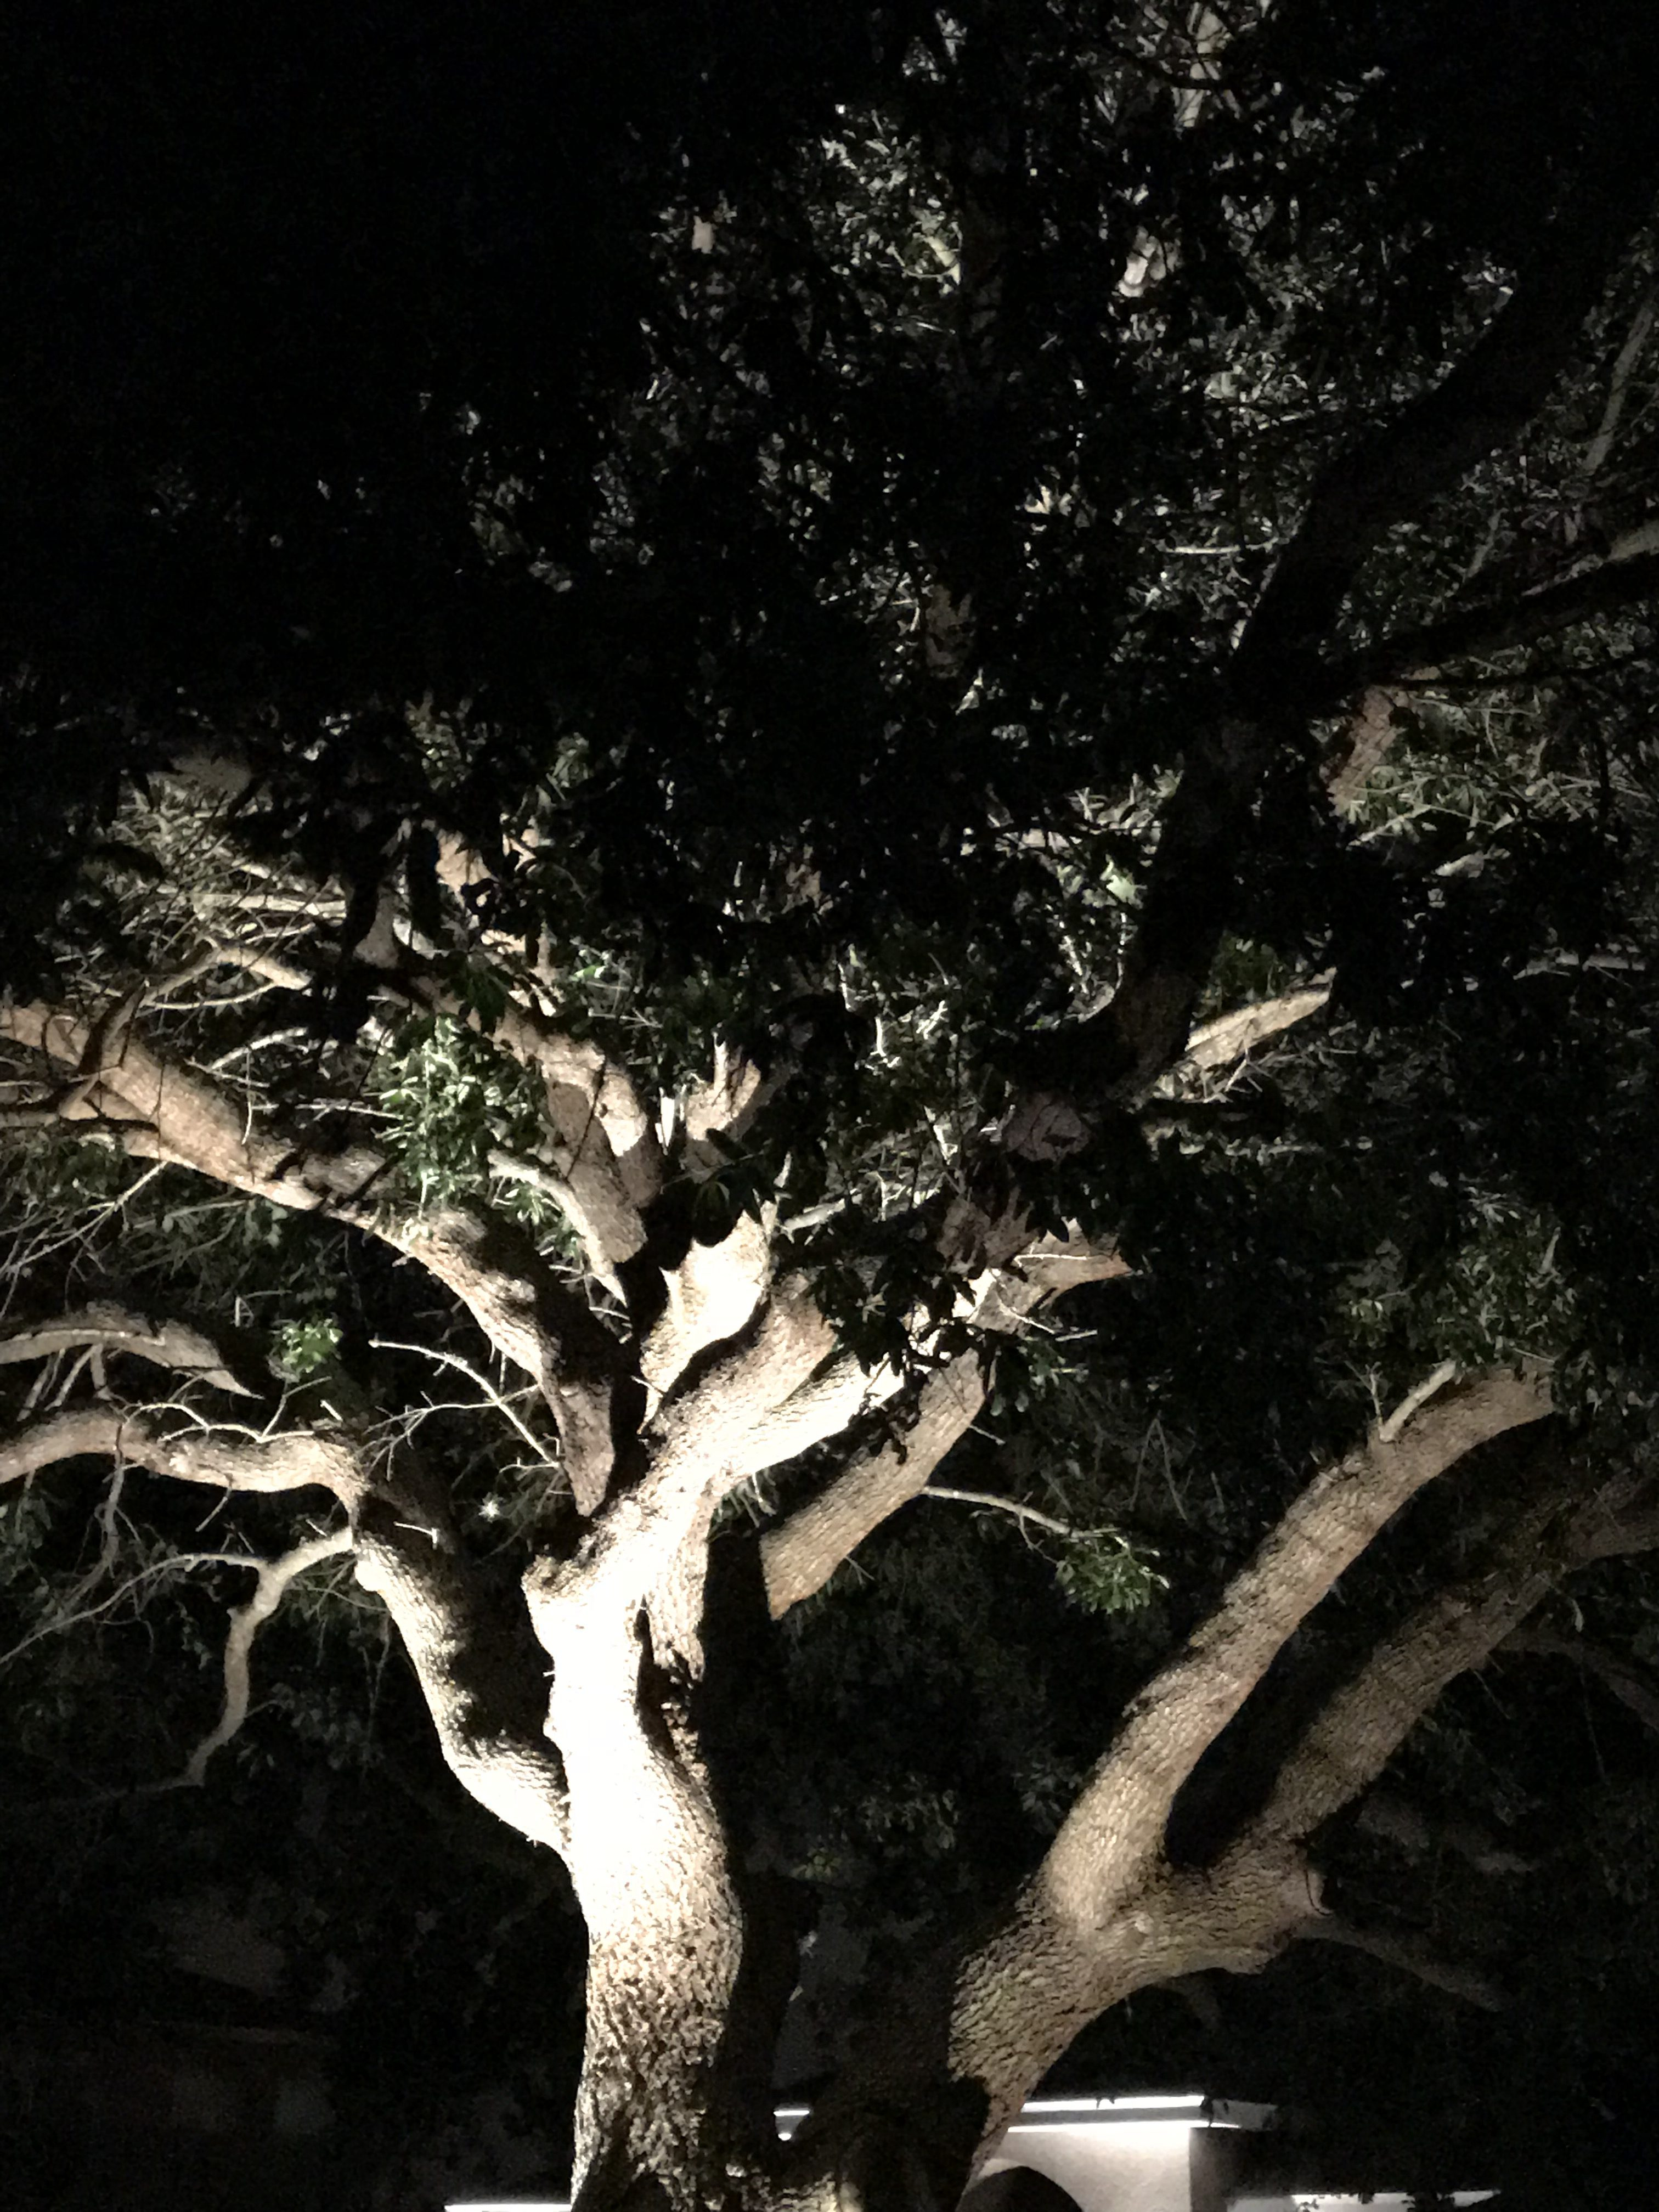 view of branches lit in a tree